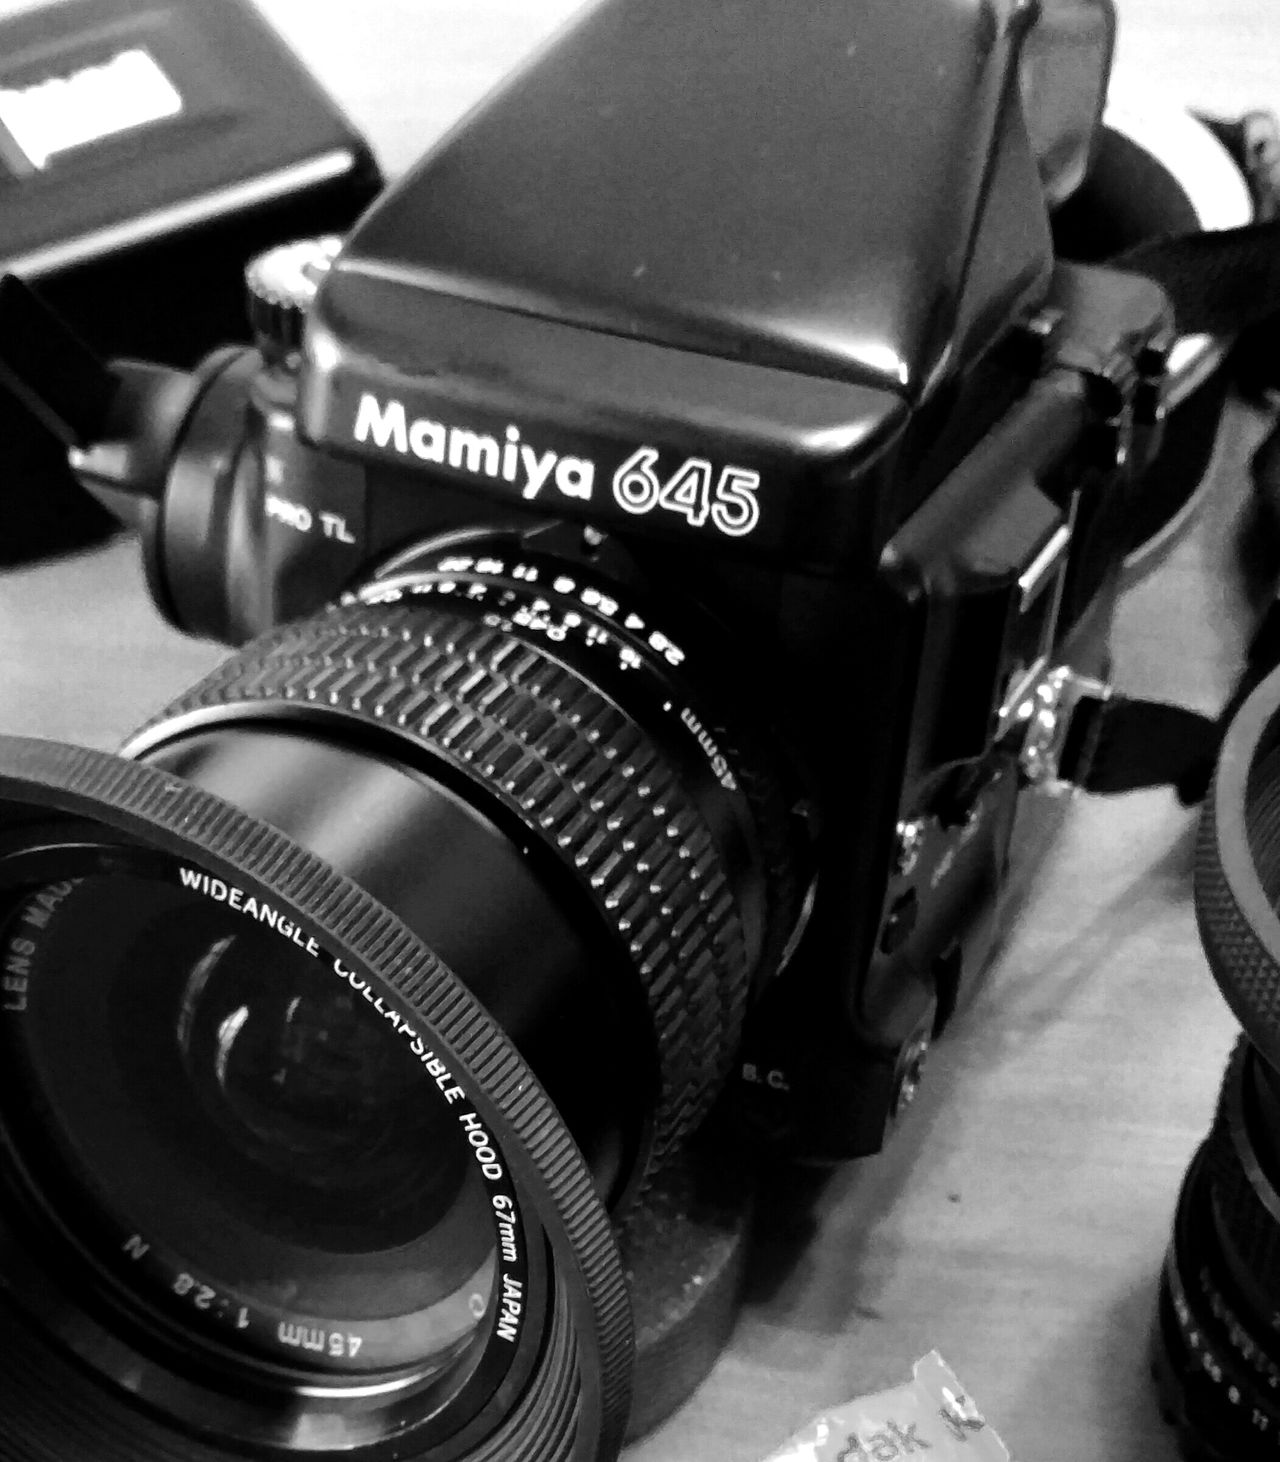 Mamiya645PRO Old-fashioned Close-up monochromatic Monochrome Photography Blackandwhite Photography Ishootfilm Istillshootfilm Anologphoto medium format Camera - Photographic Equipment Black Color Arts Culture And Entertainment Indoors  Technology No People Day Mami